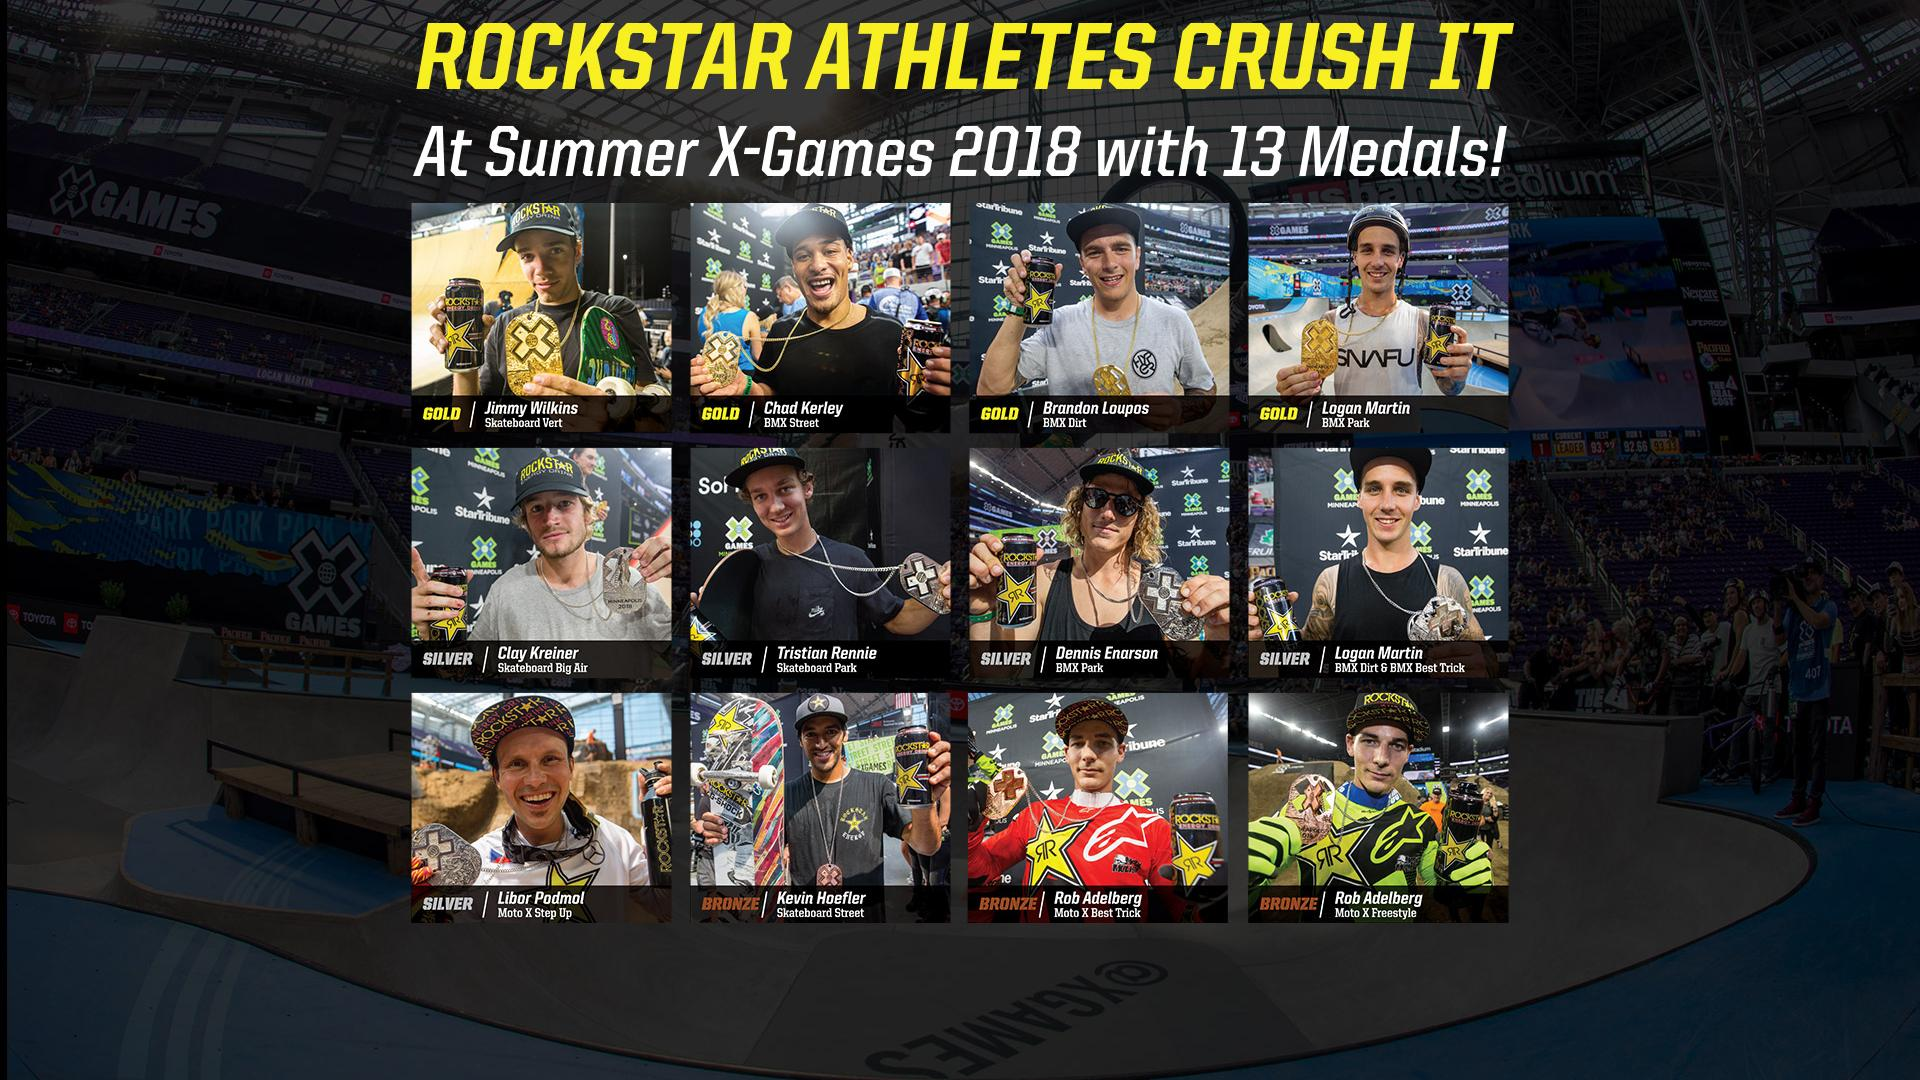 2018 Summer X Games - Rockstar Athletes Crush It!